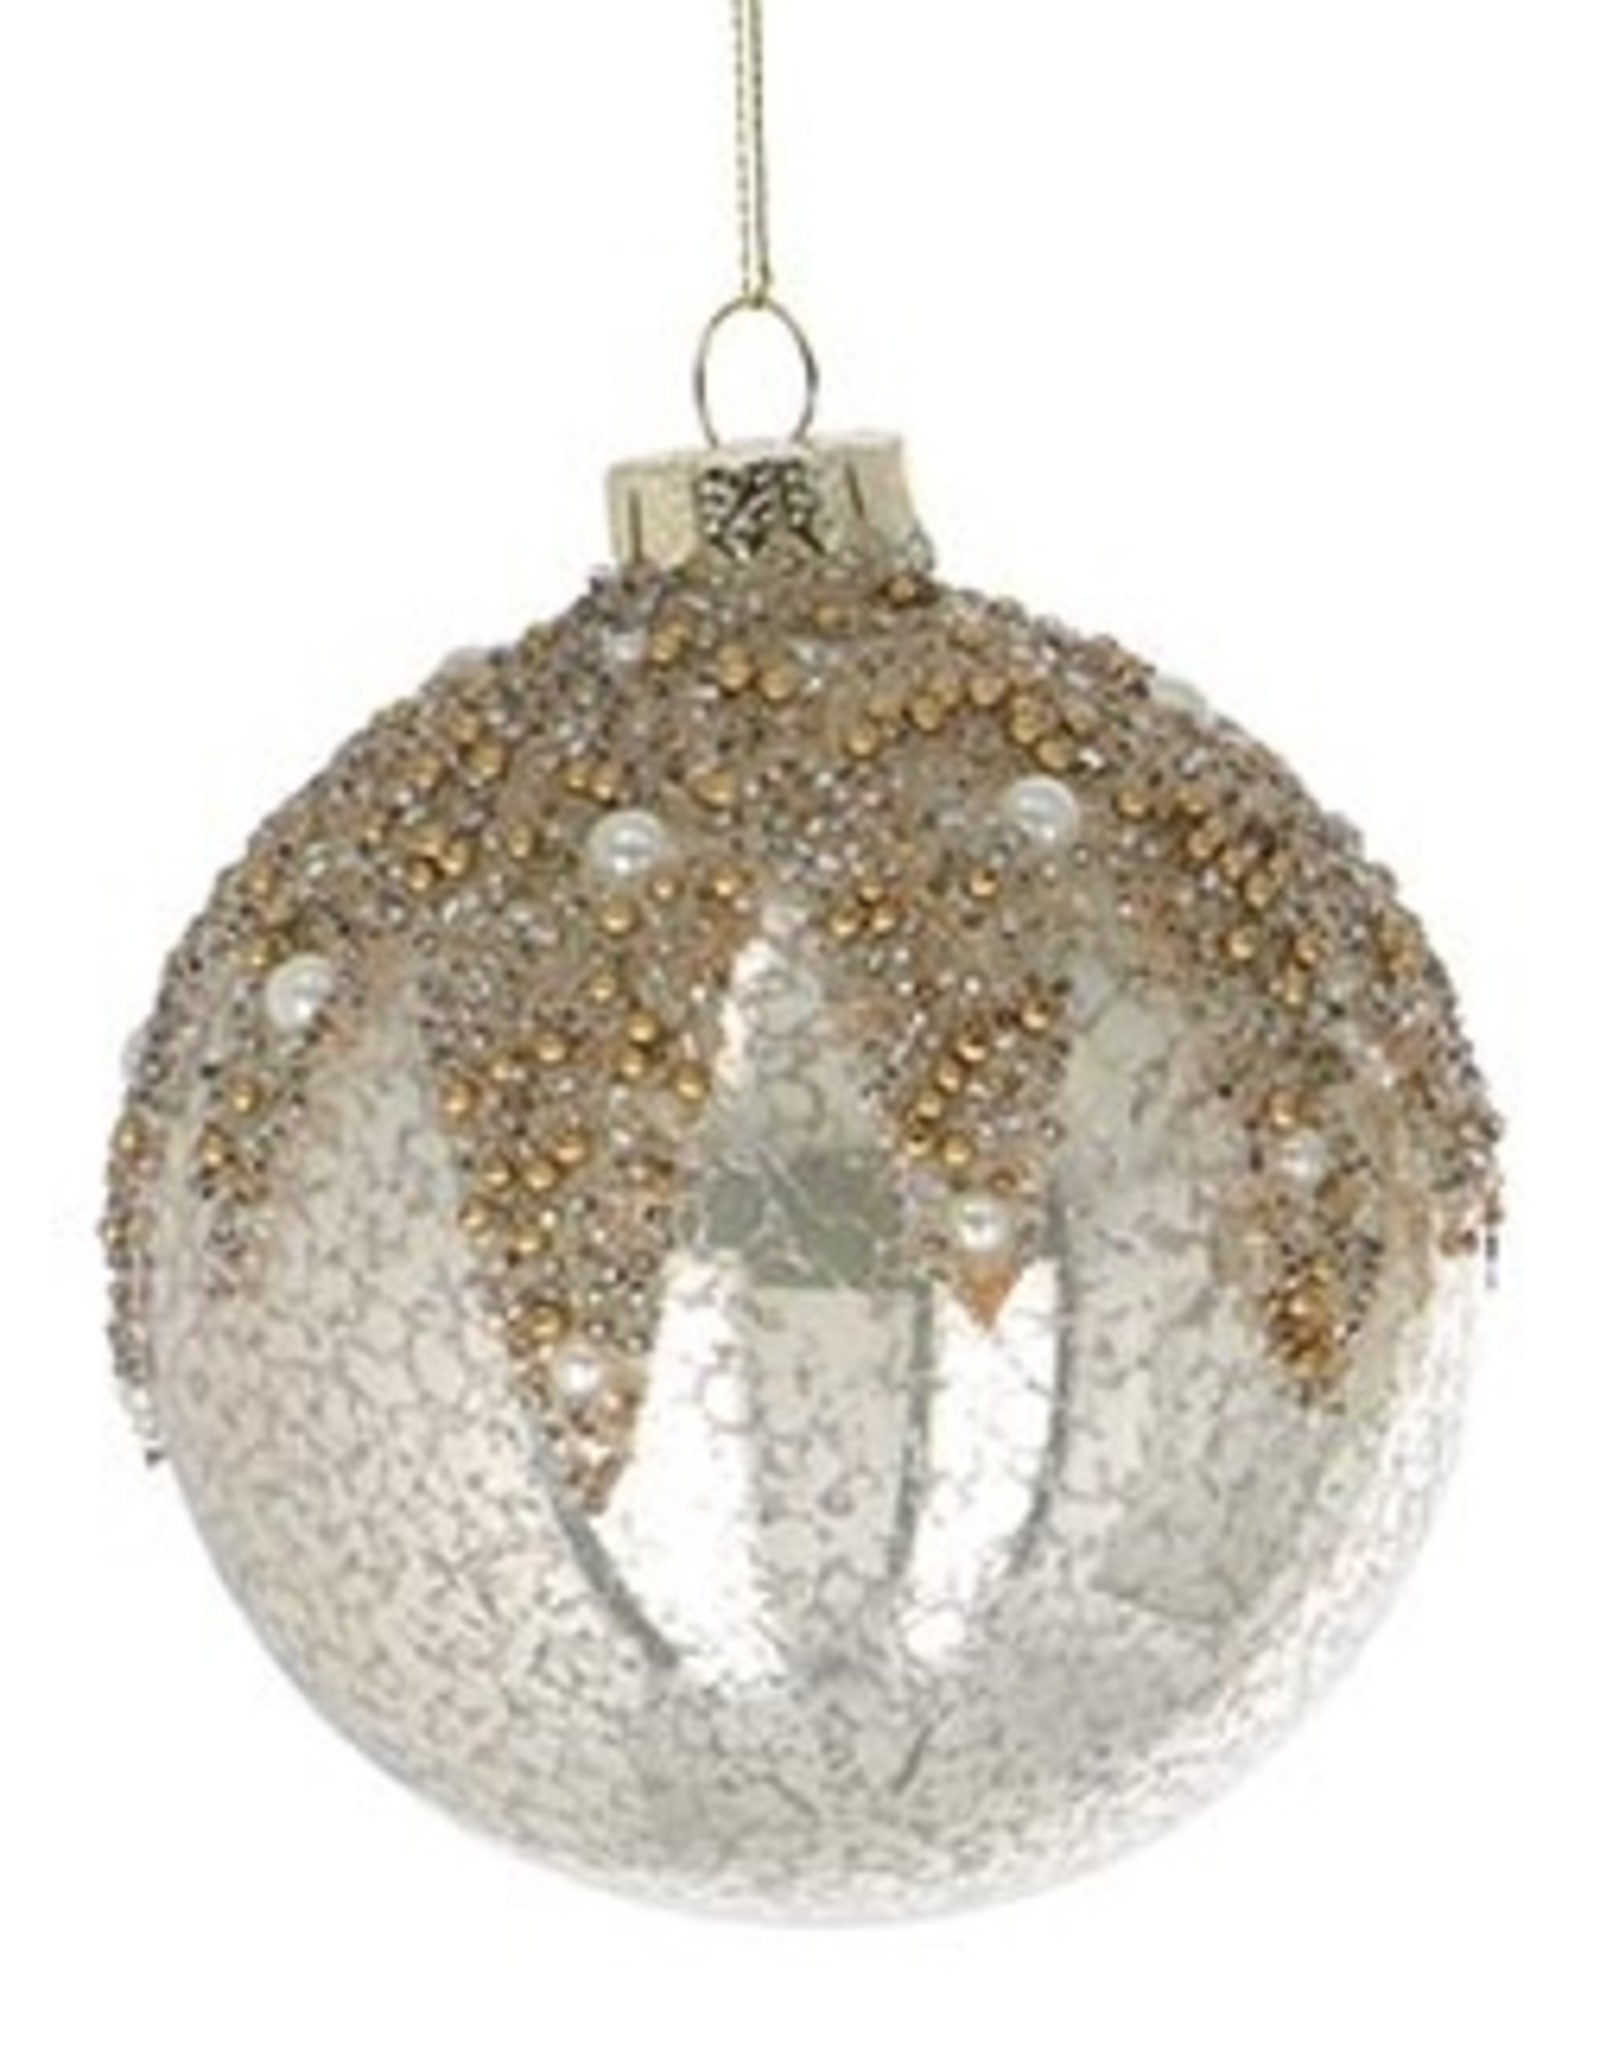 Wink Round Glass Mercury Ornament with Glitter and Pearls